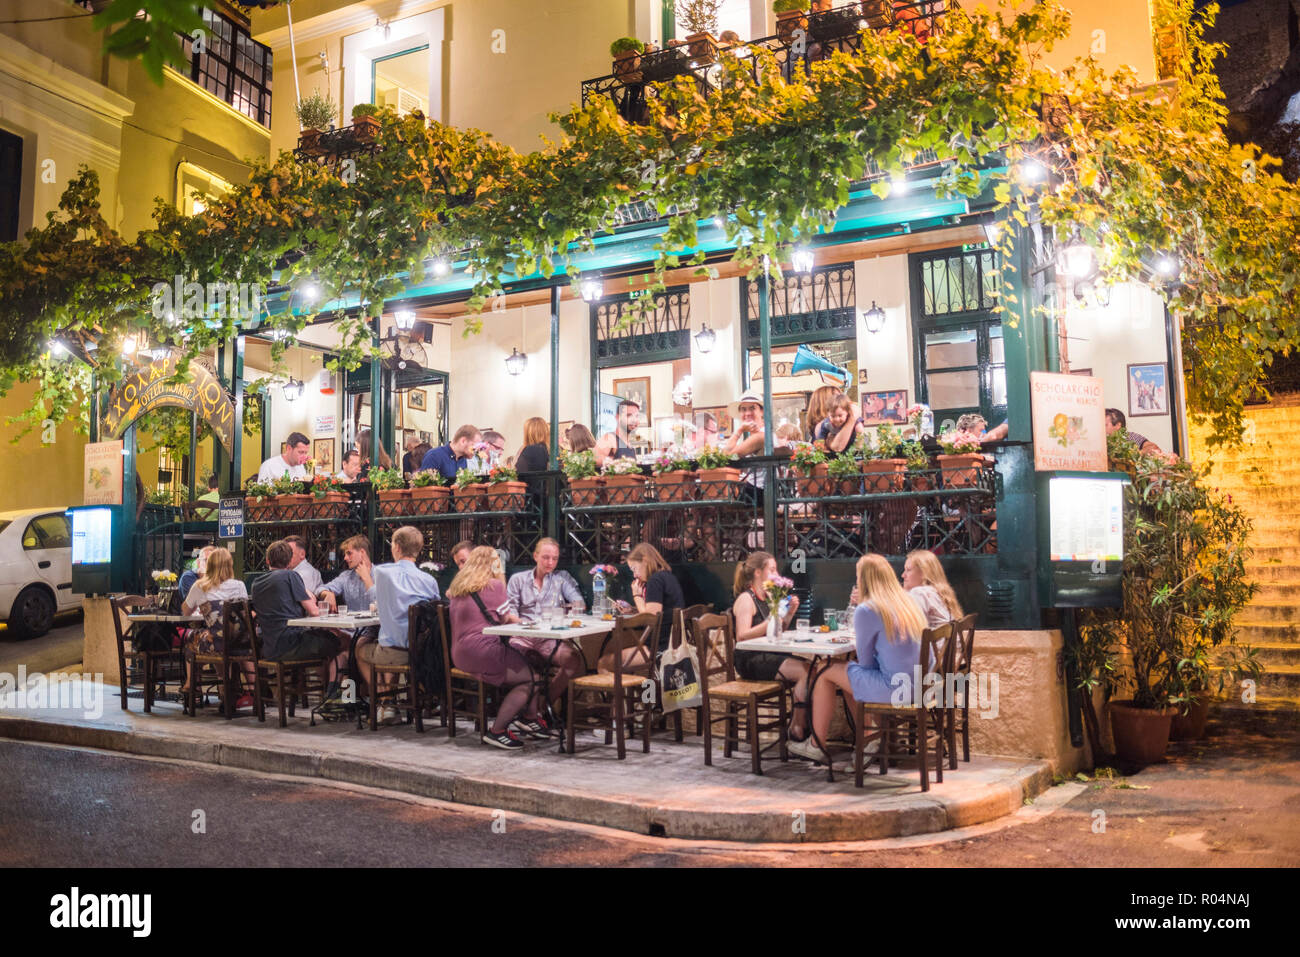 Restaurant at night, Plaka District, Athens, Attica Region, Greece, Europe - Stock Image